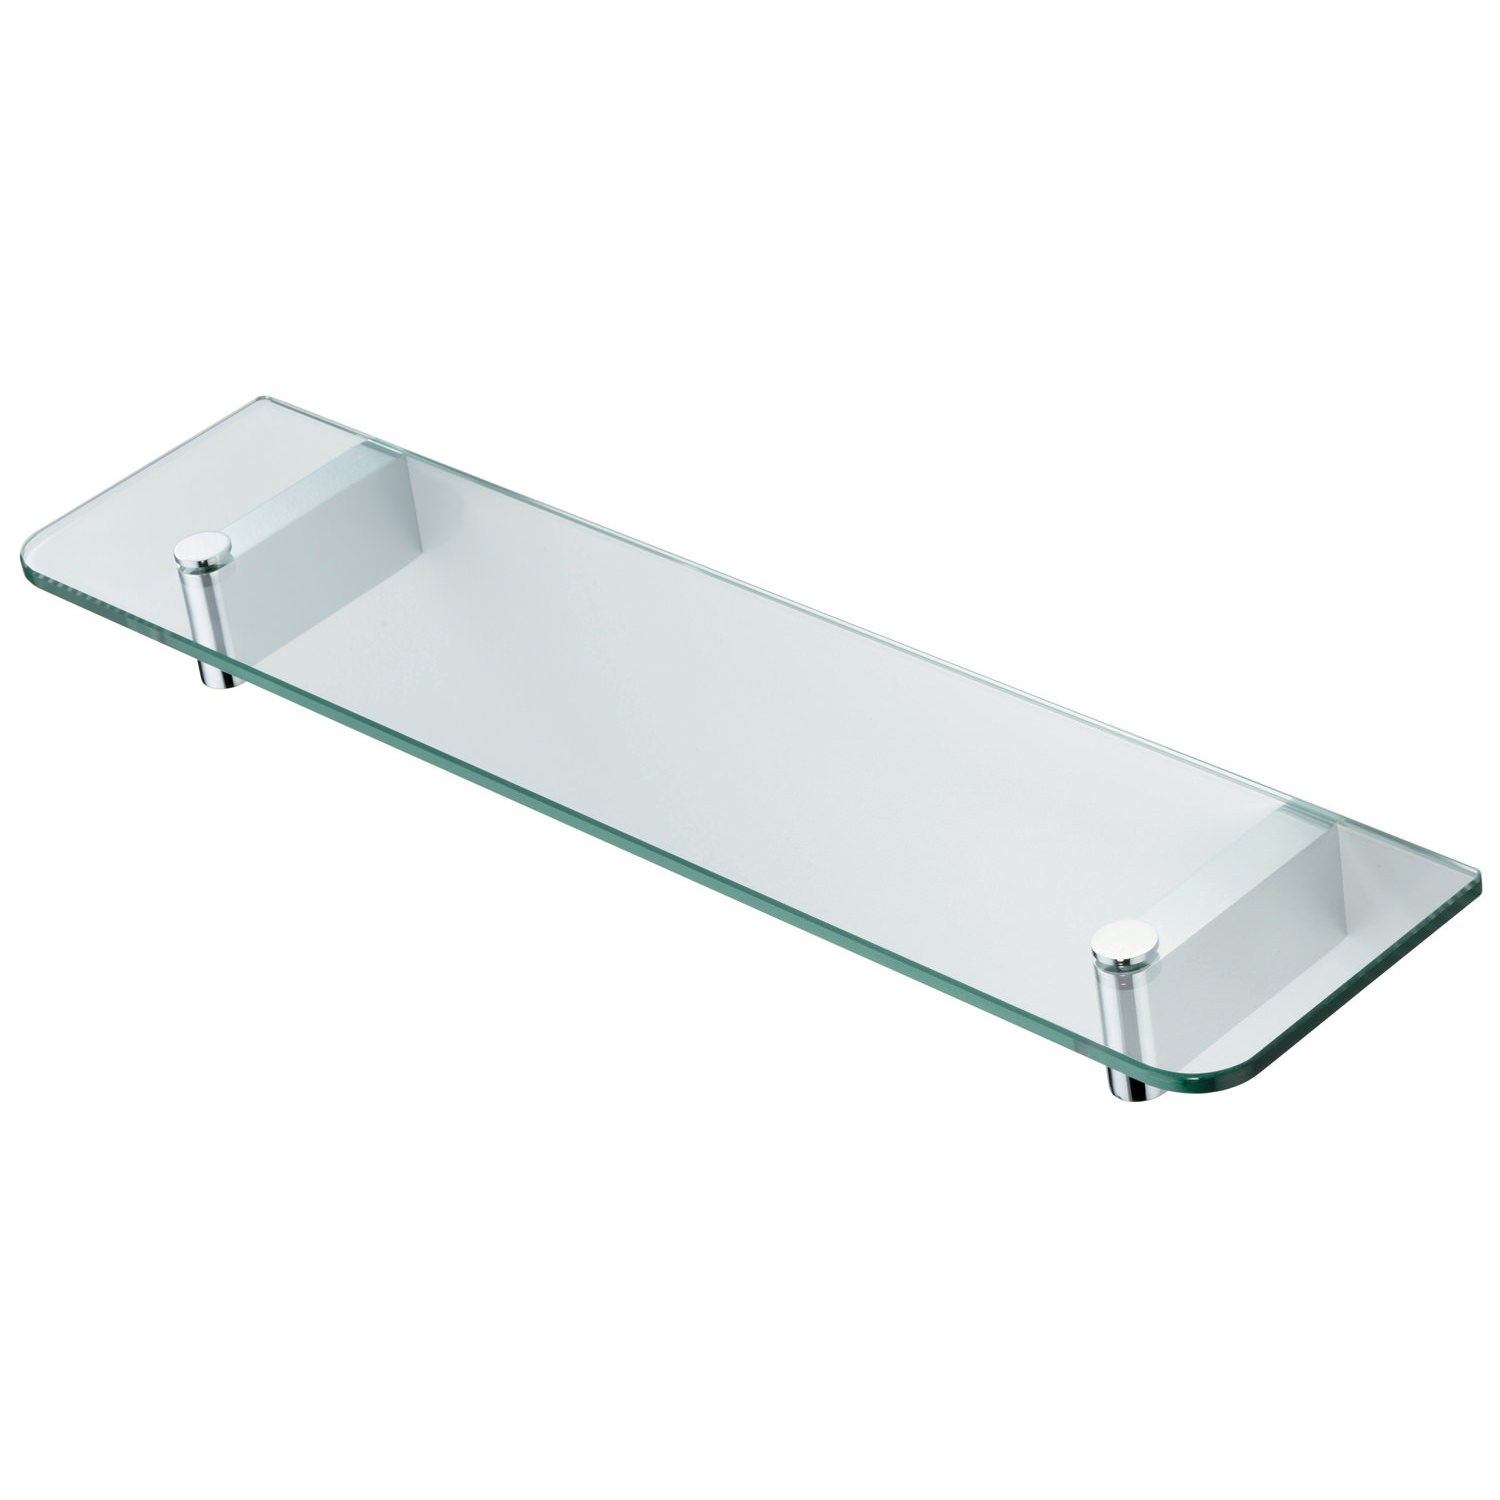 Glass shelving bathroom - Ideal Standard Concept 500mm Glass Shelf With Brackets N1324aa